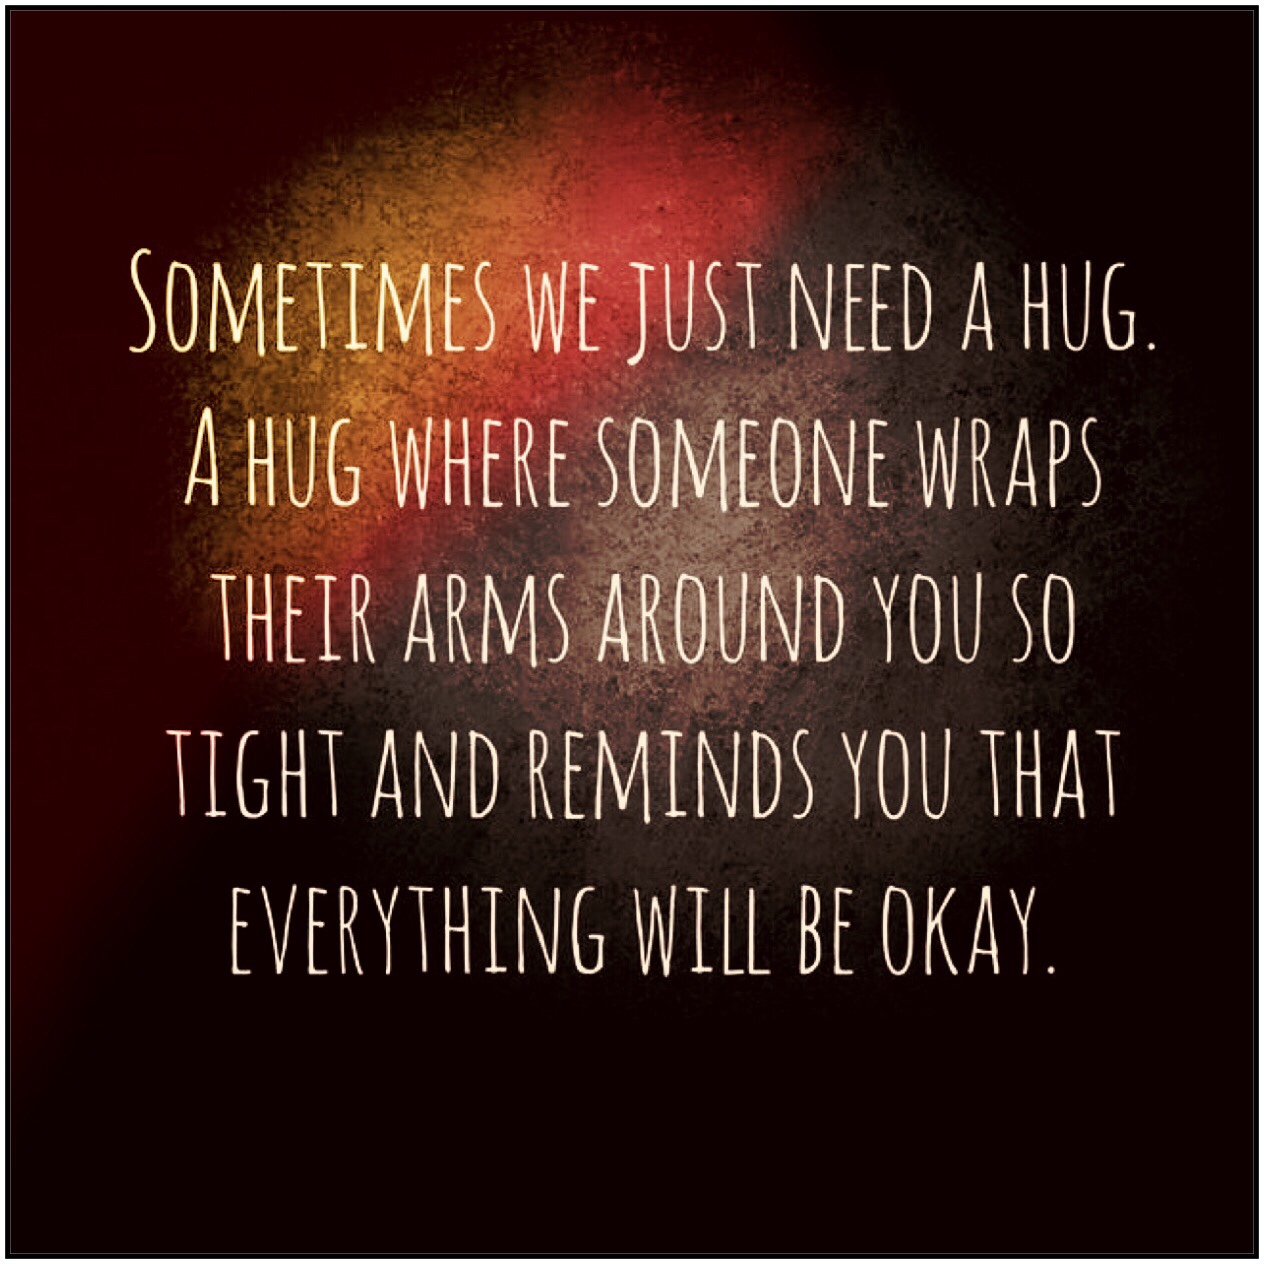 Sometimes we just need a hug